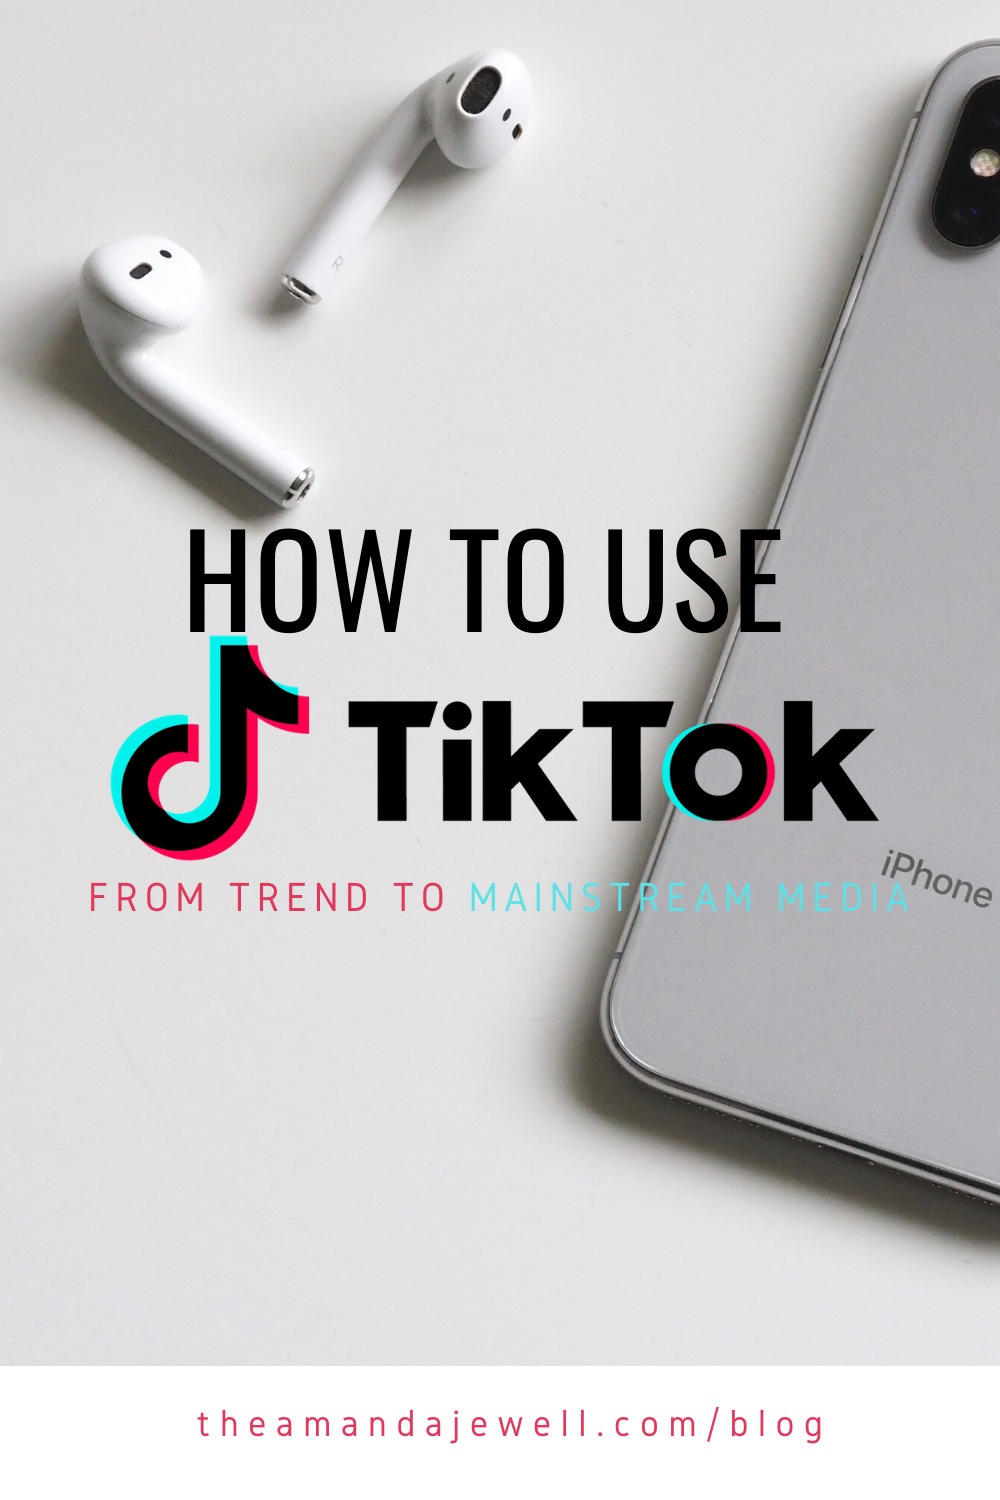 How To Use Tiktok Amanda Jewell Youtube Channel Ideas Business Growth Strategies Being Used